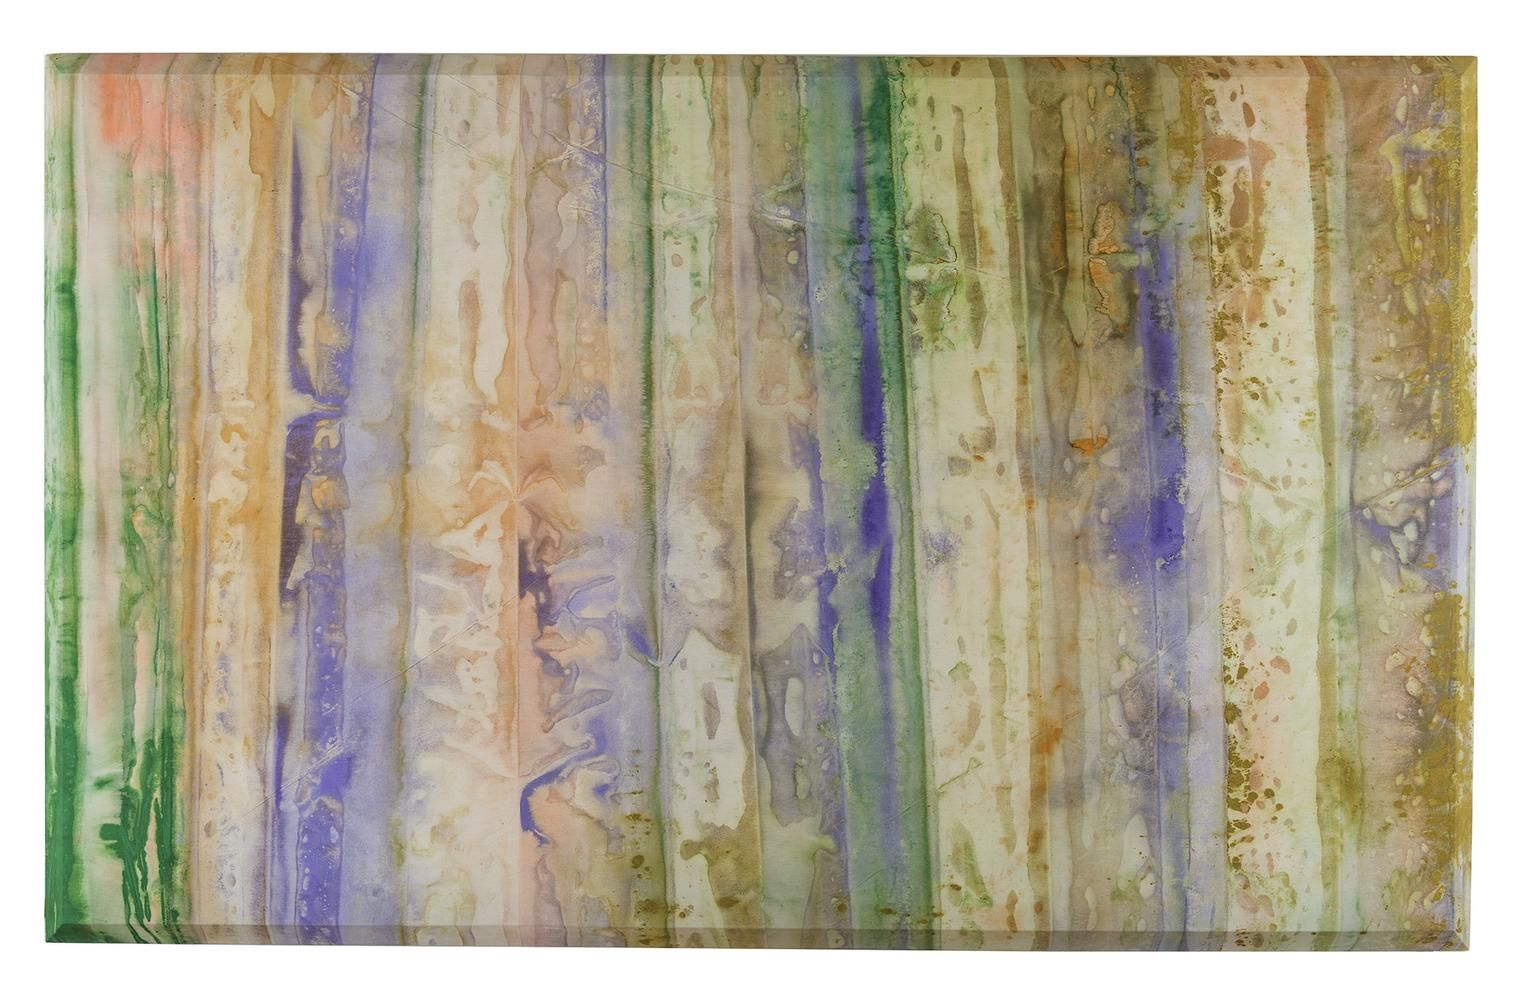 Sam Gilliam Atmosphere 1972 acrylic on canvas 92 x 144 inches (233.7 x 365.8 cm)